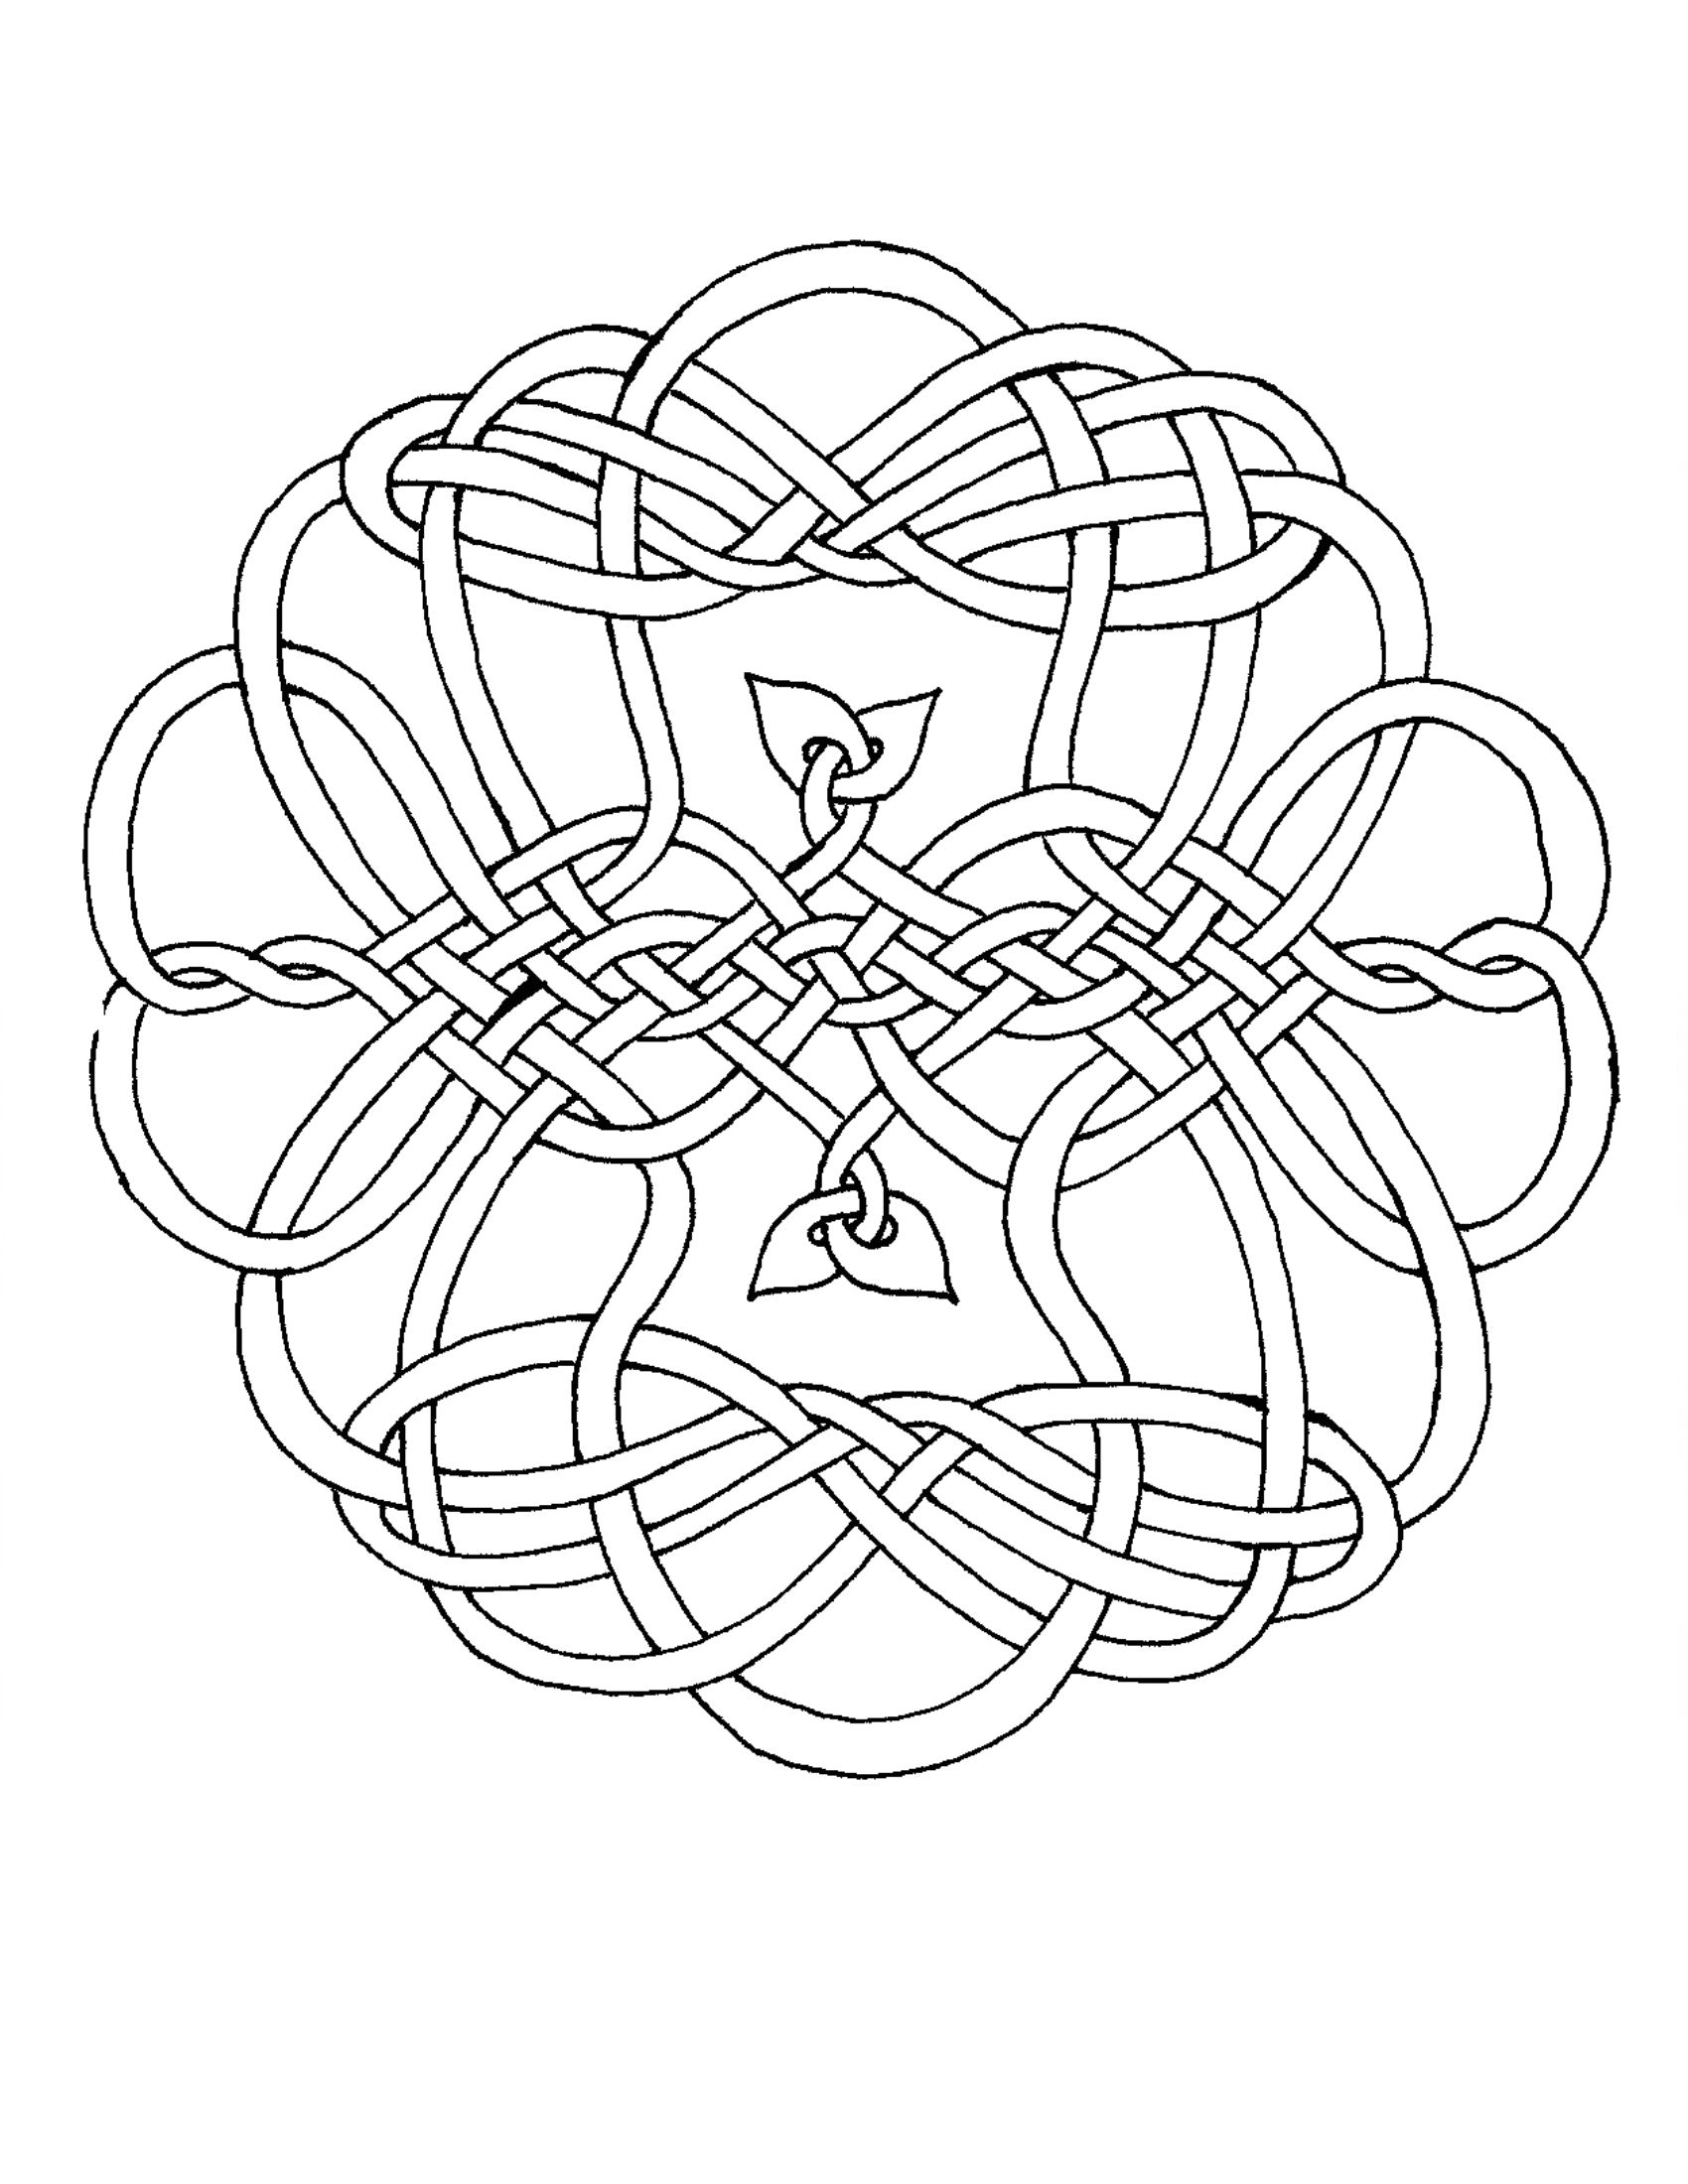 free coloring pages celtic designs | Celtic Coloring - Circle I by Artistfire on DeviantArt